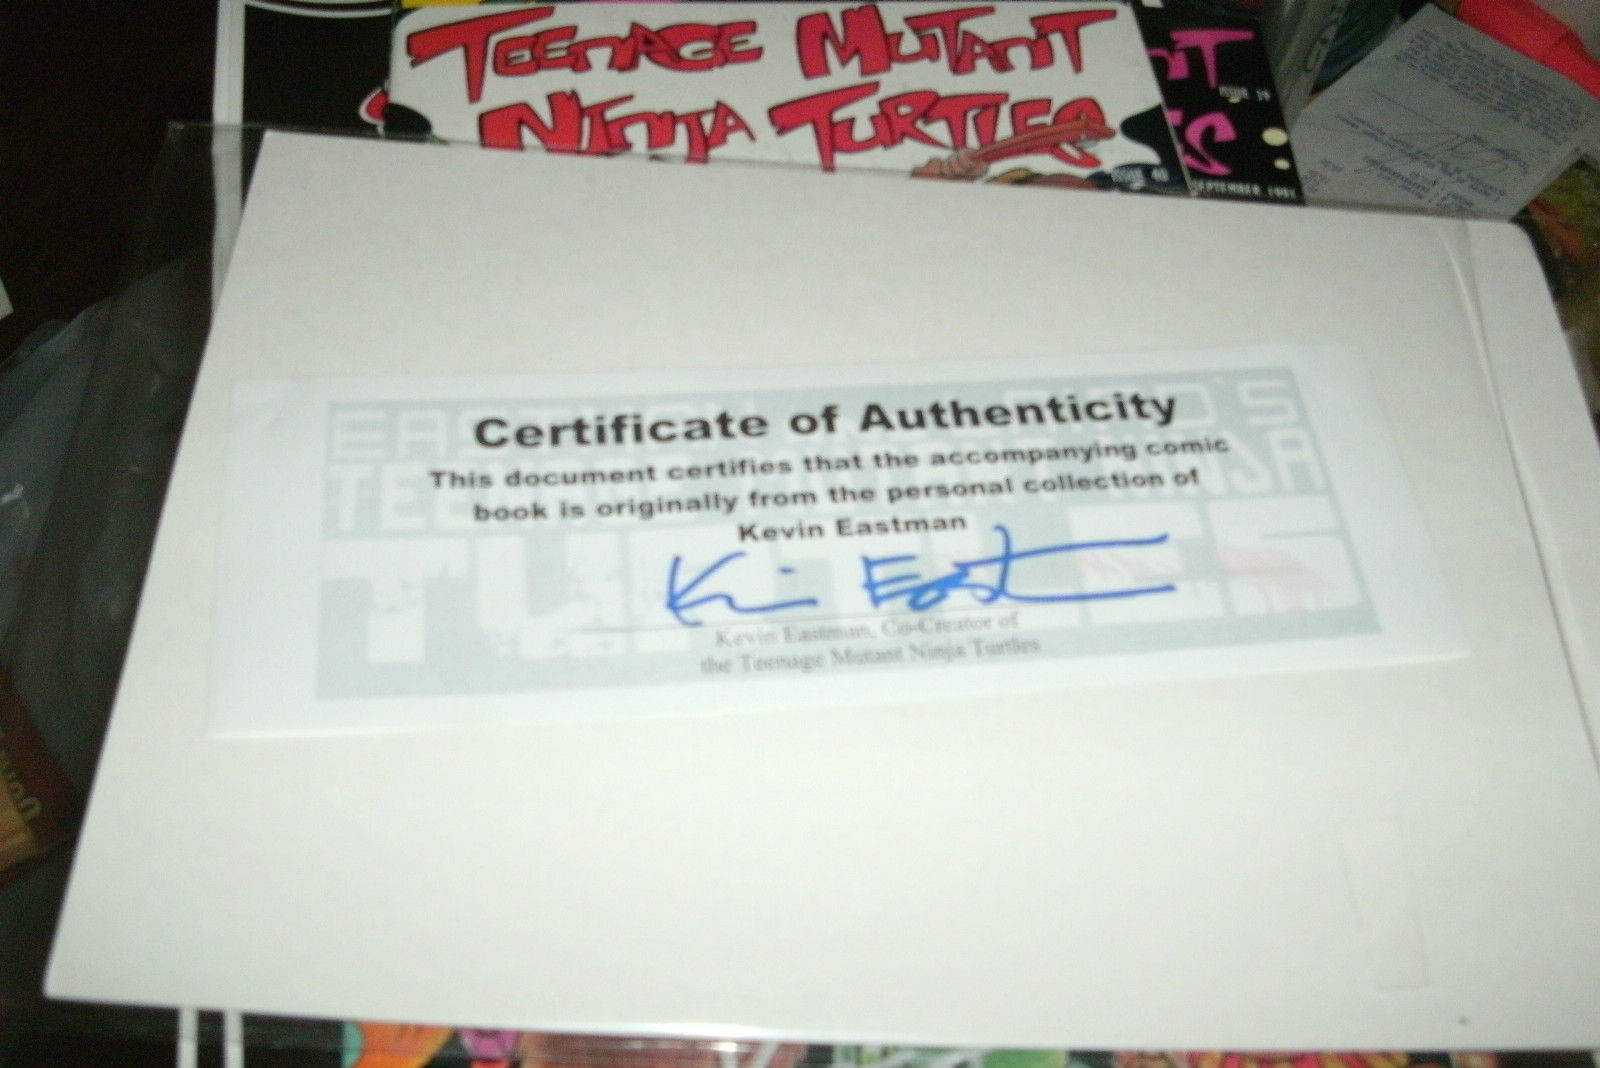 TMNT # 38, 39, 40 SIGNED W/ 1 SKETCH KEVIN EASTMAN CERTIFICATE INCLUDED